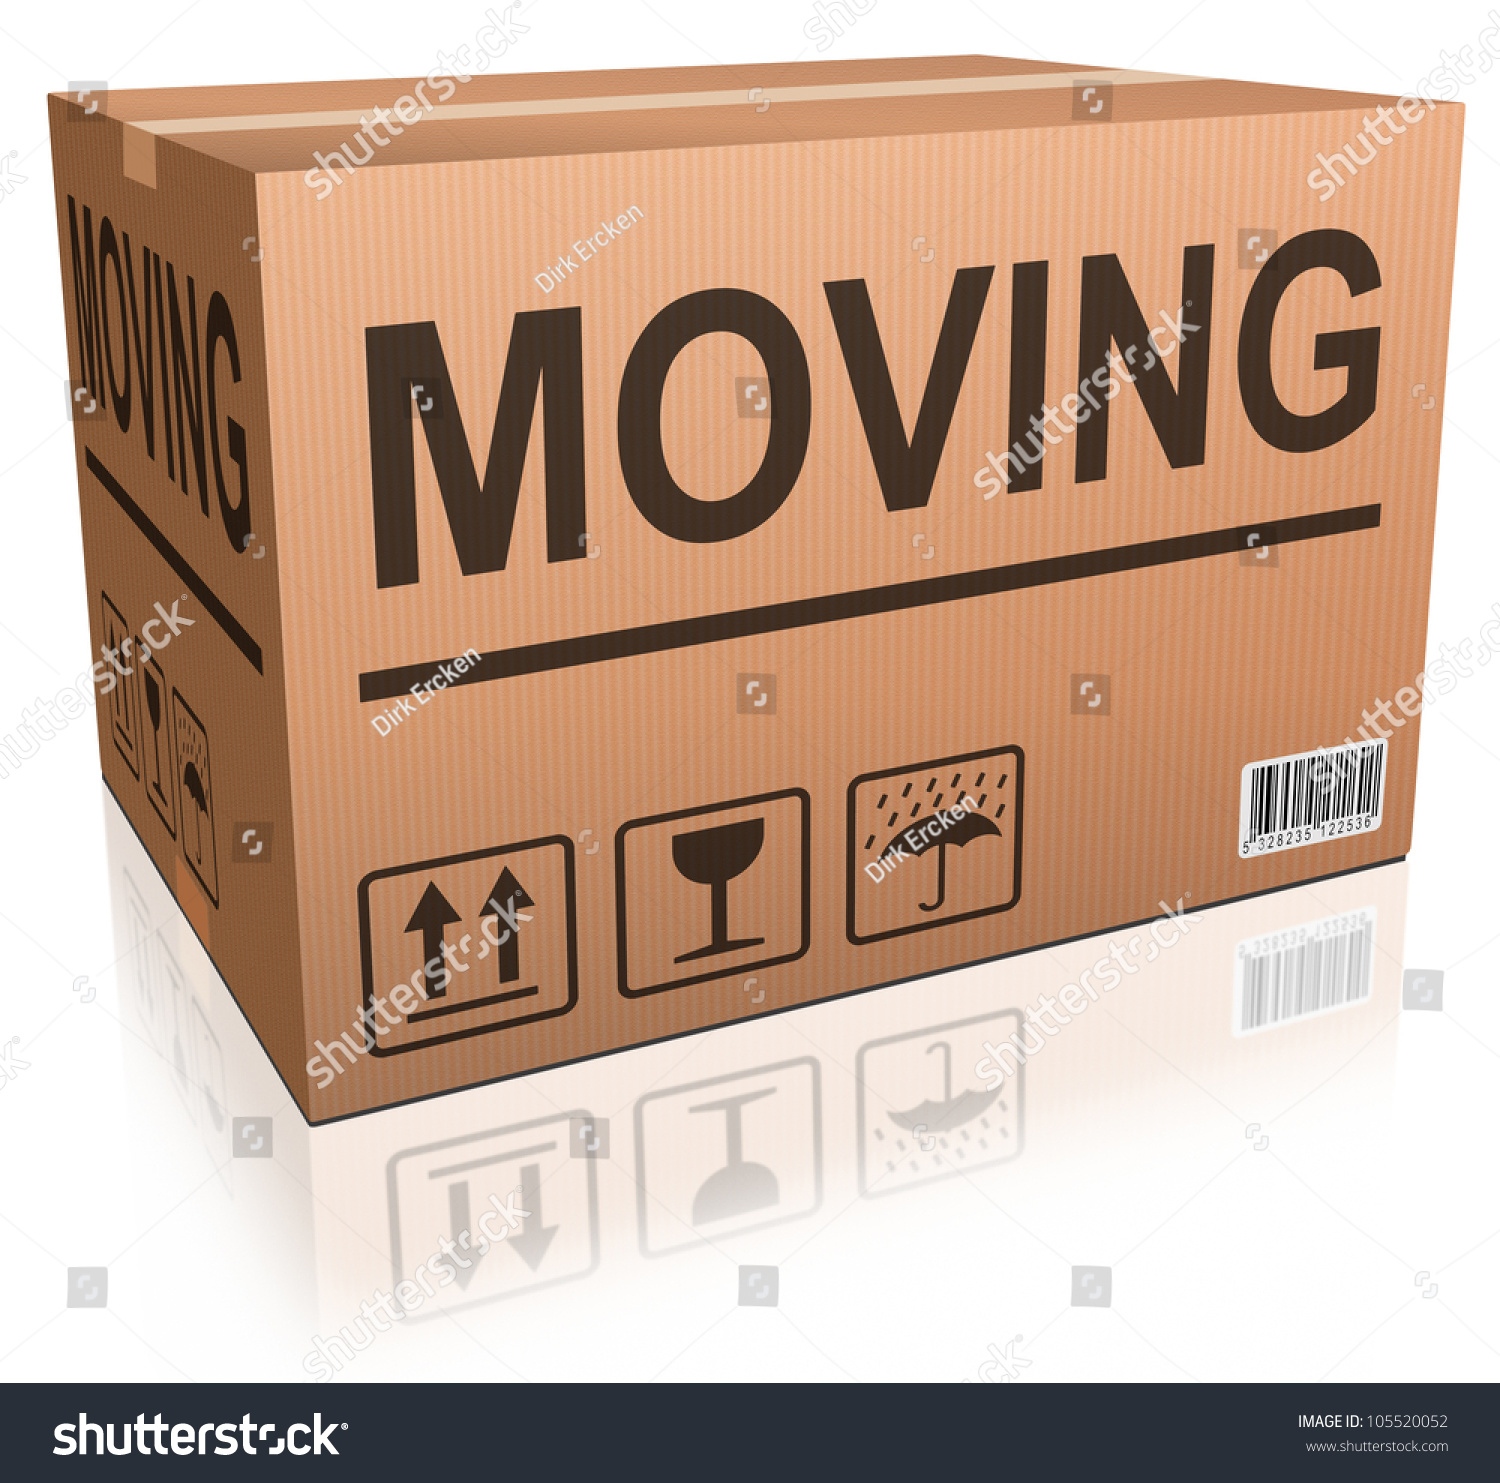 moving box in cardboard text relocation package stock photo save to a lightbox